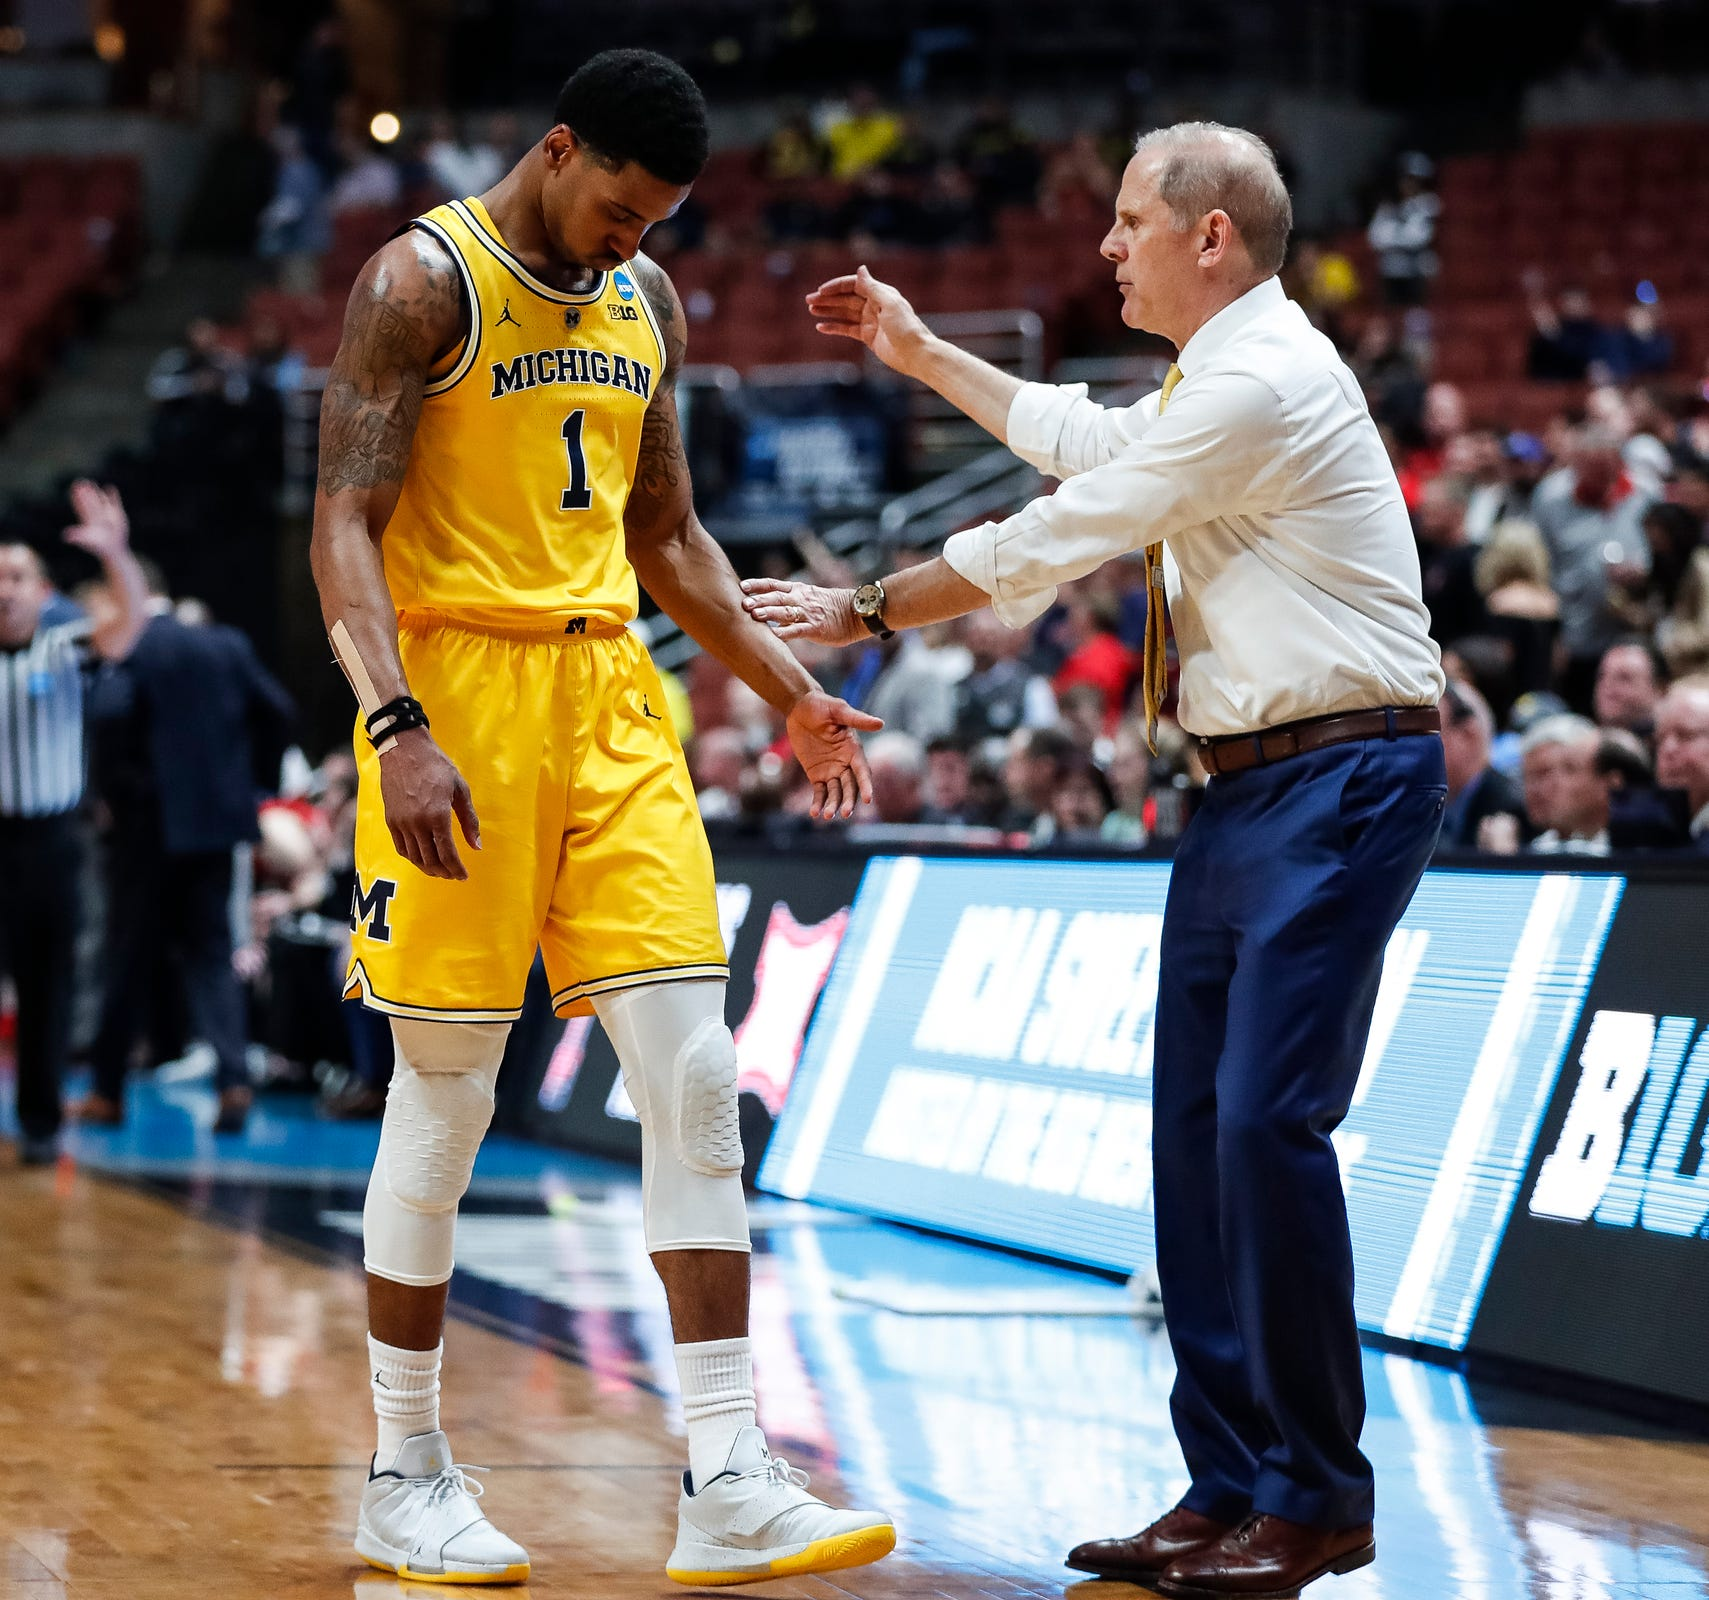 Michigan's Charles Matthews walks off the court after being substituted by coach John Beilein during the 63-44 loss in the Sweet 16 against Texas Tech in Anaheim, Calif., Thursday, March 28, 2019.